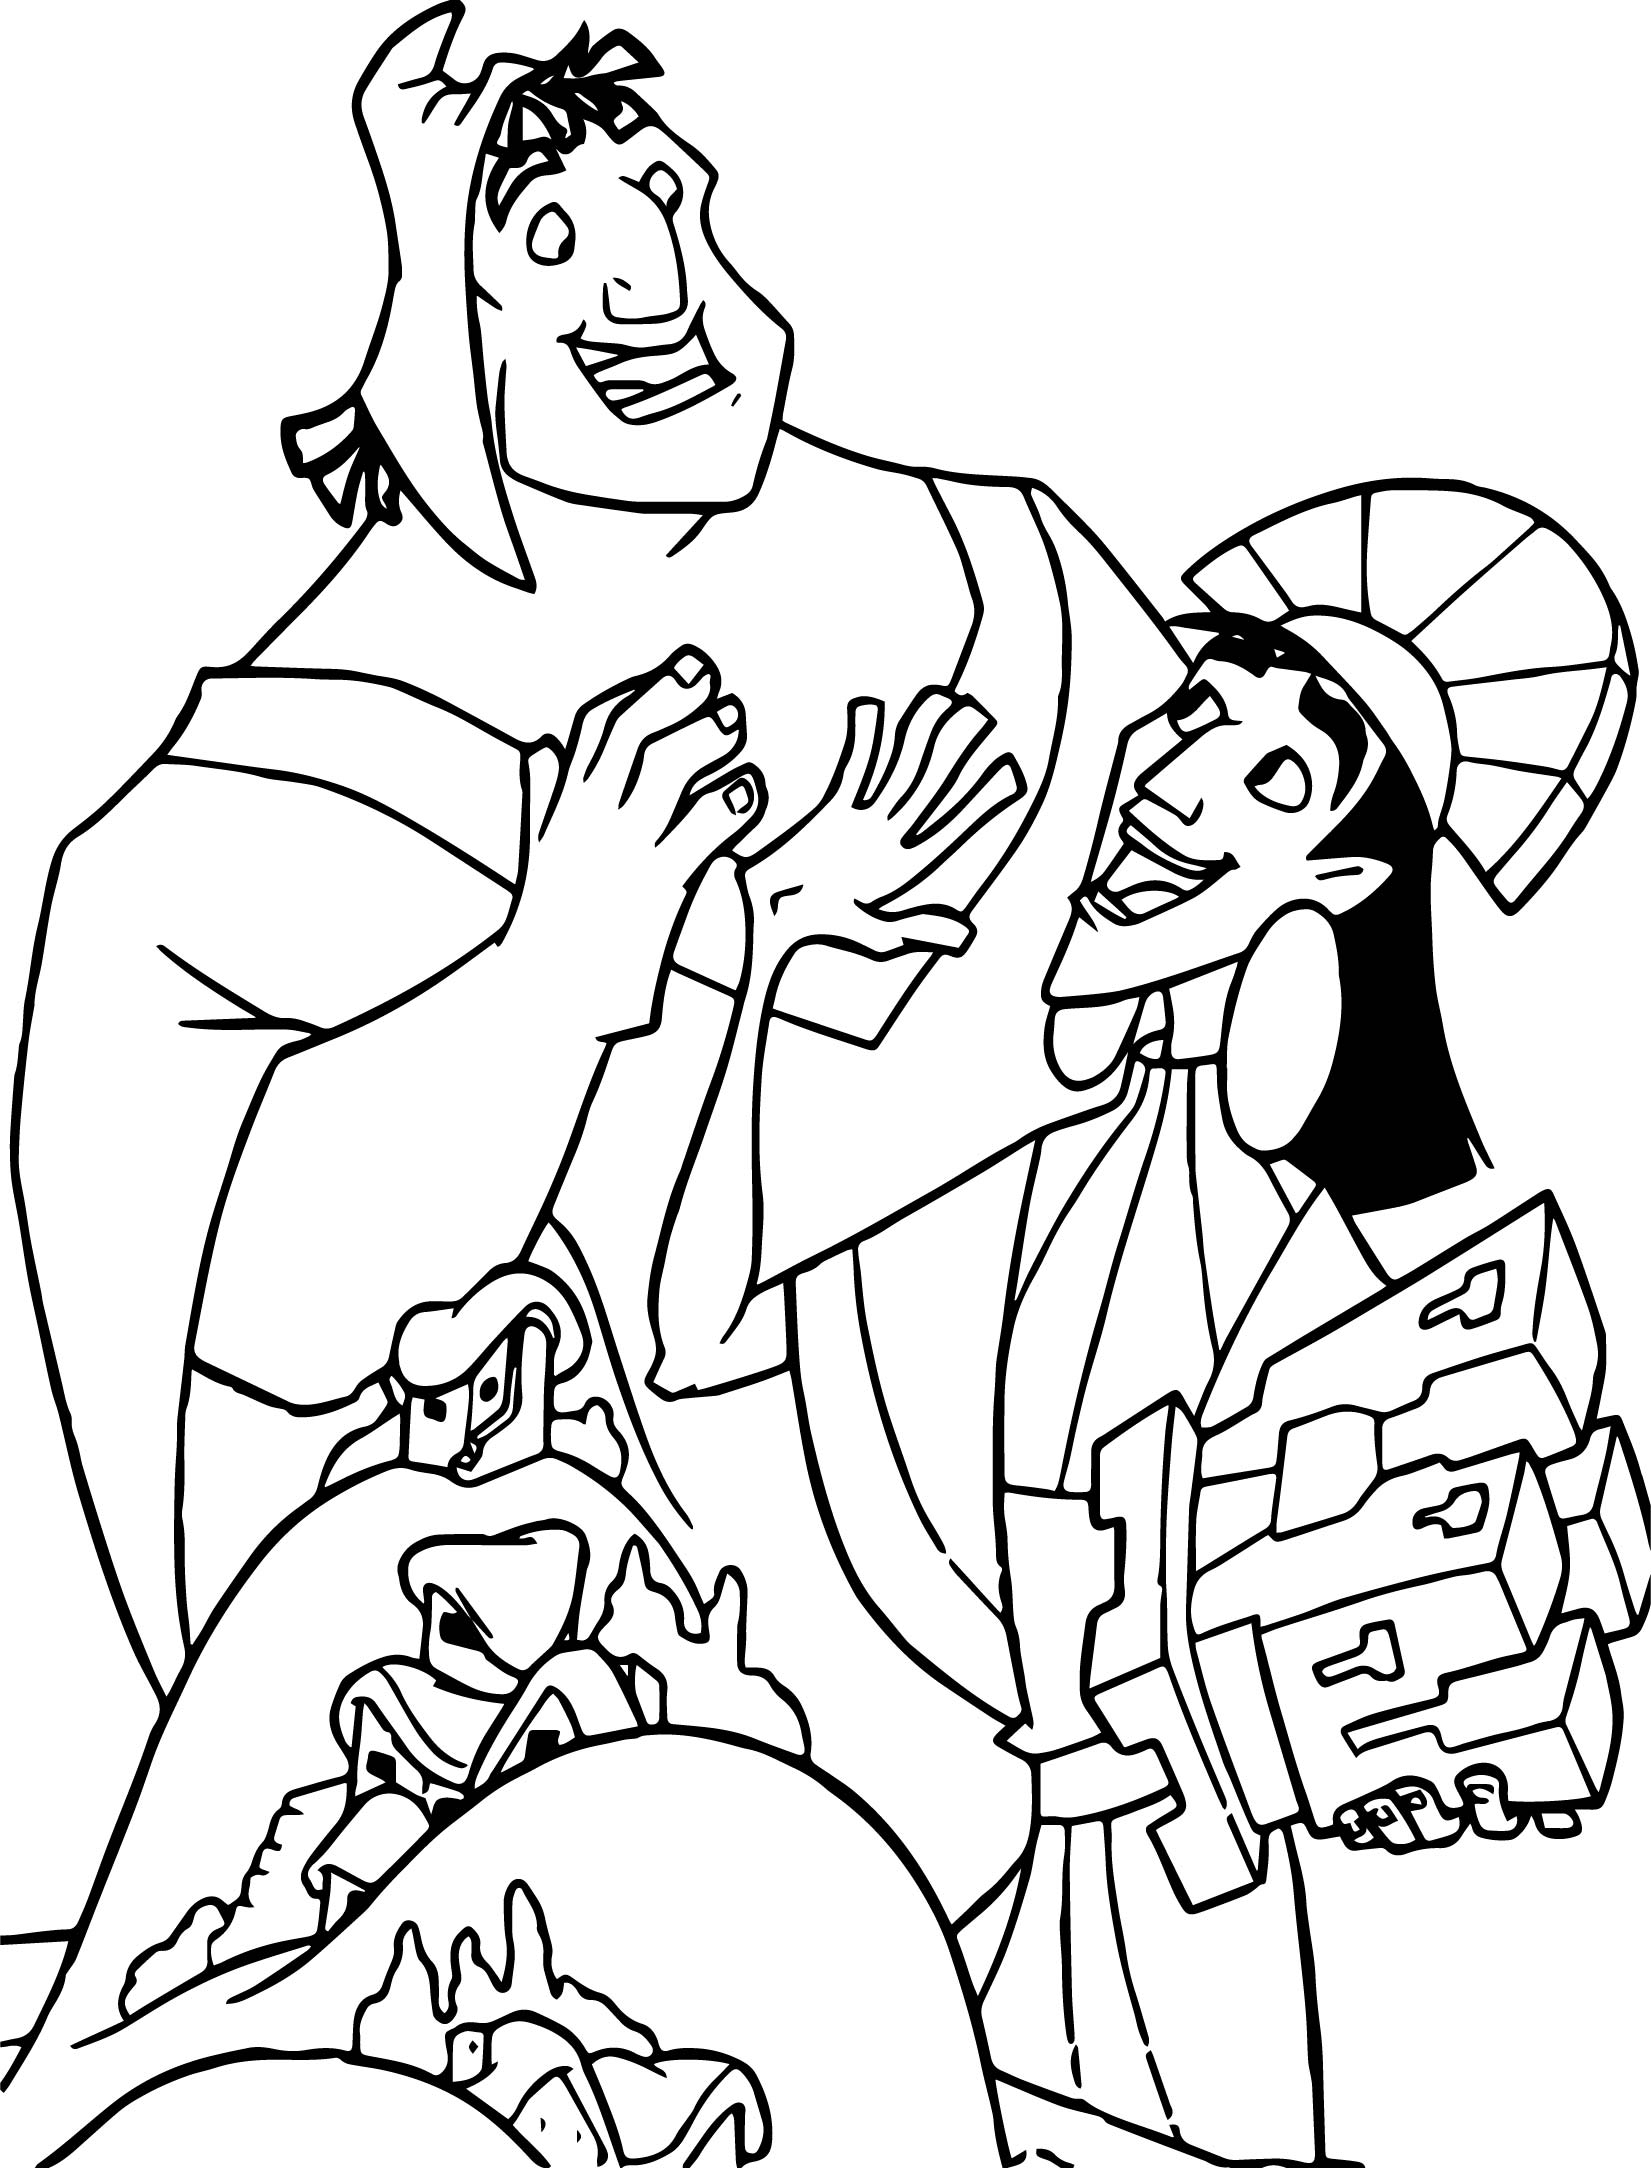 1651x2168 The Emperor New Groove Disney Castle Toy Coloring Pages